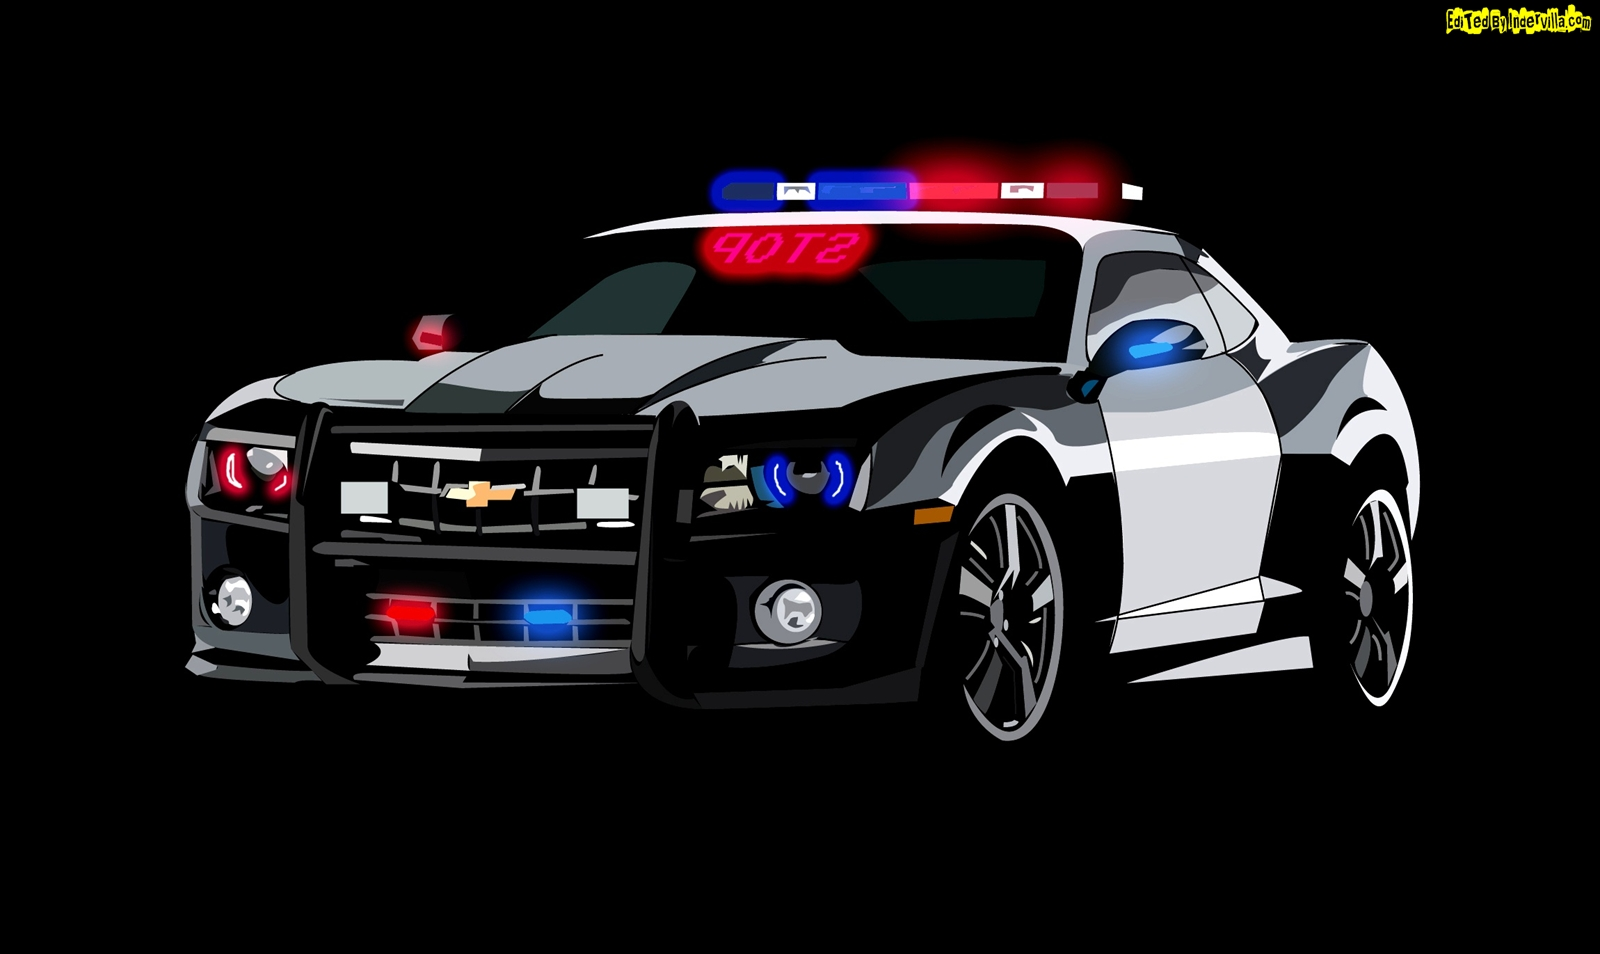 Police Car HD Wallpaper HD Wallpapers Source 1600x954